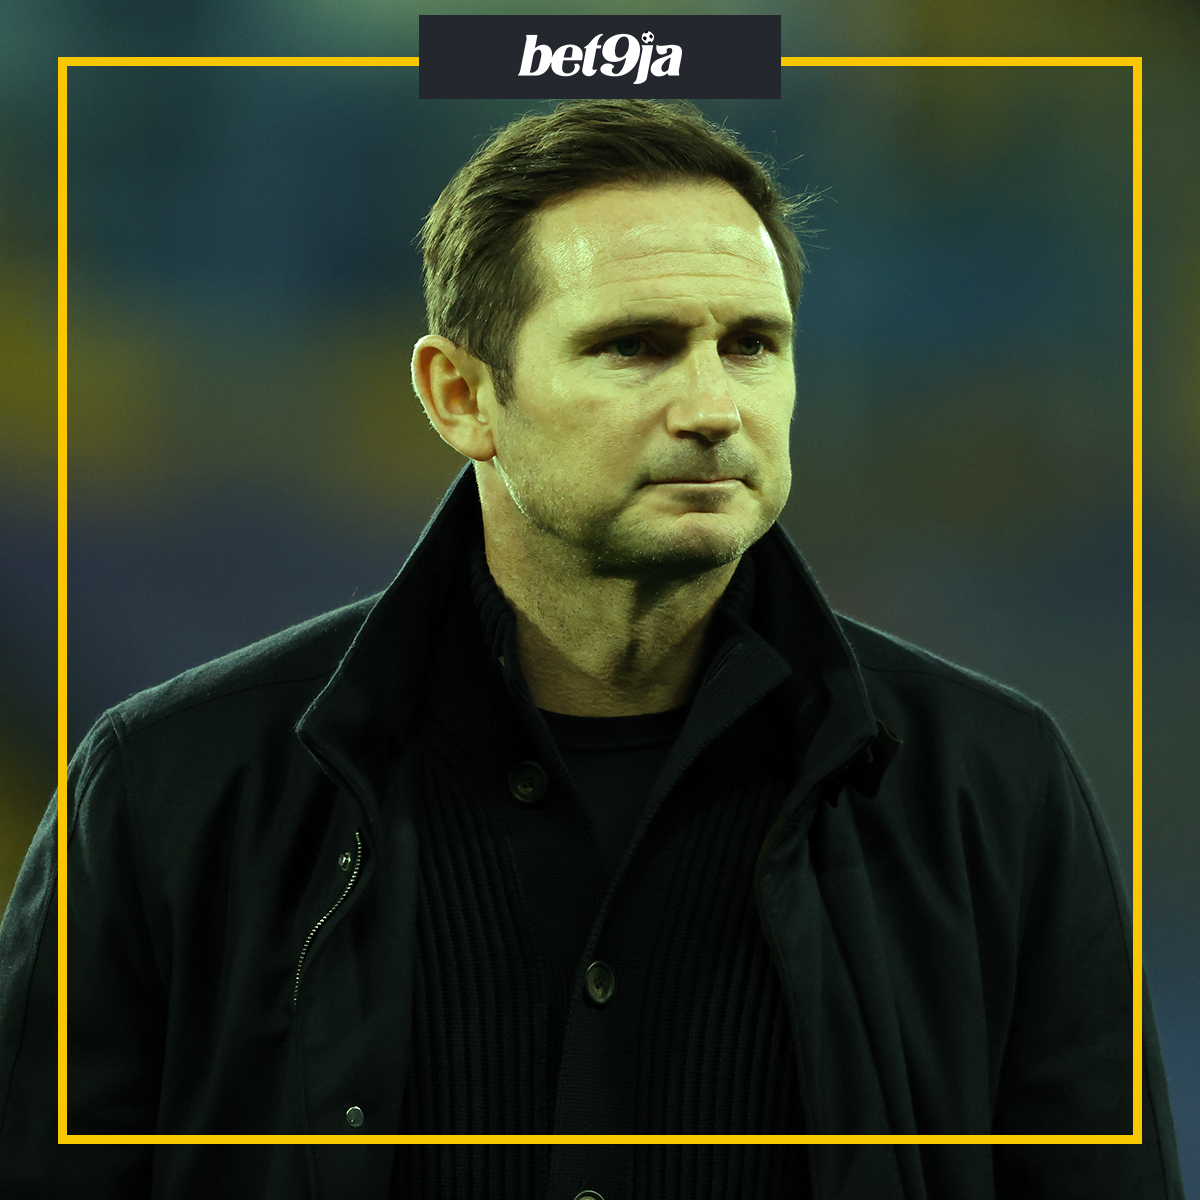 In his first spell in charge, José Mourinho lost just 21 of his 185 games as Chelsea manager... Frank Lampard lost 23 of his 84.